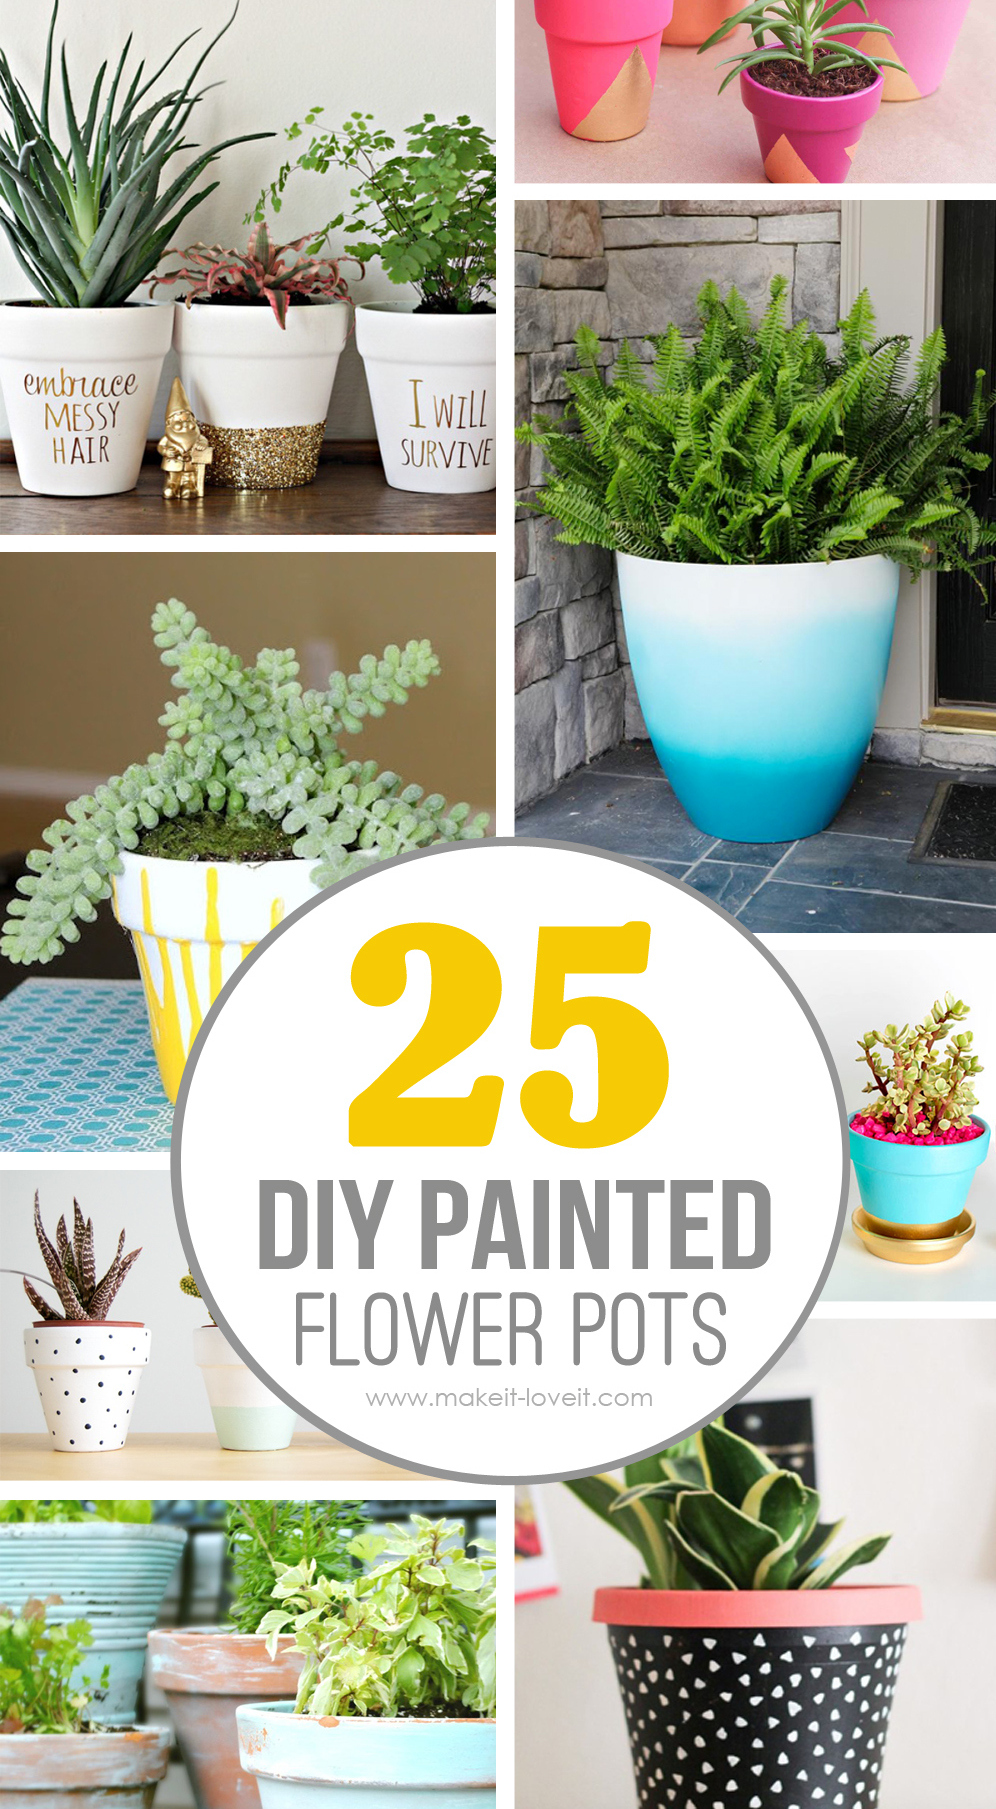 25-DIY-Painted-Flower-Pot-Ideas